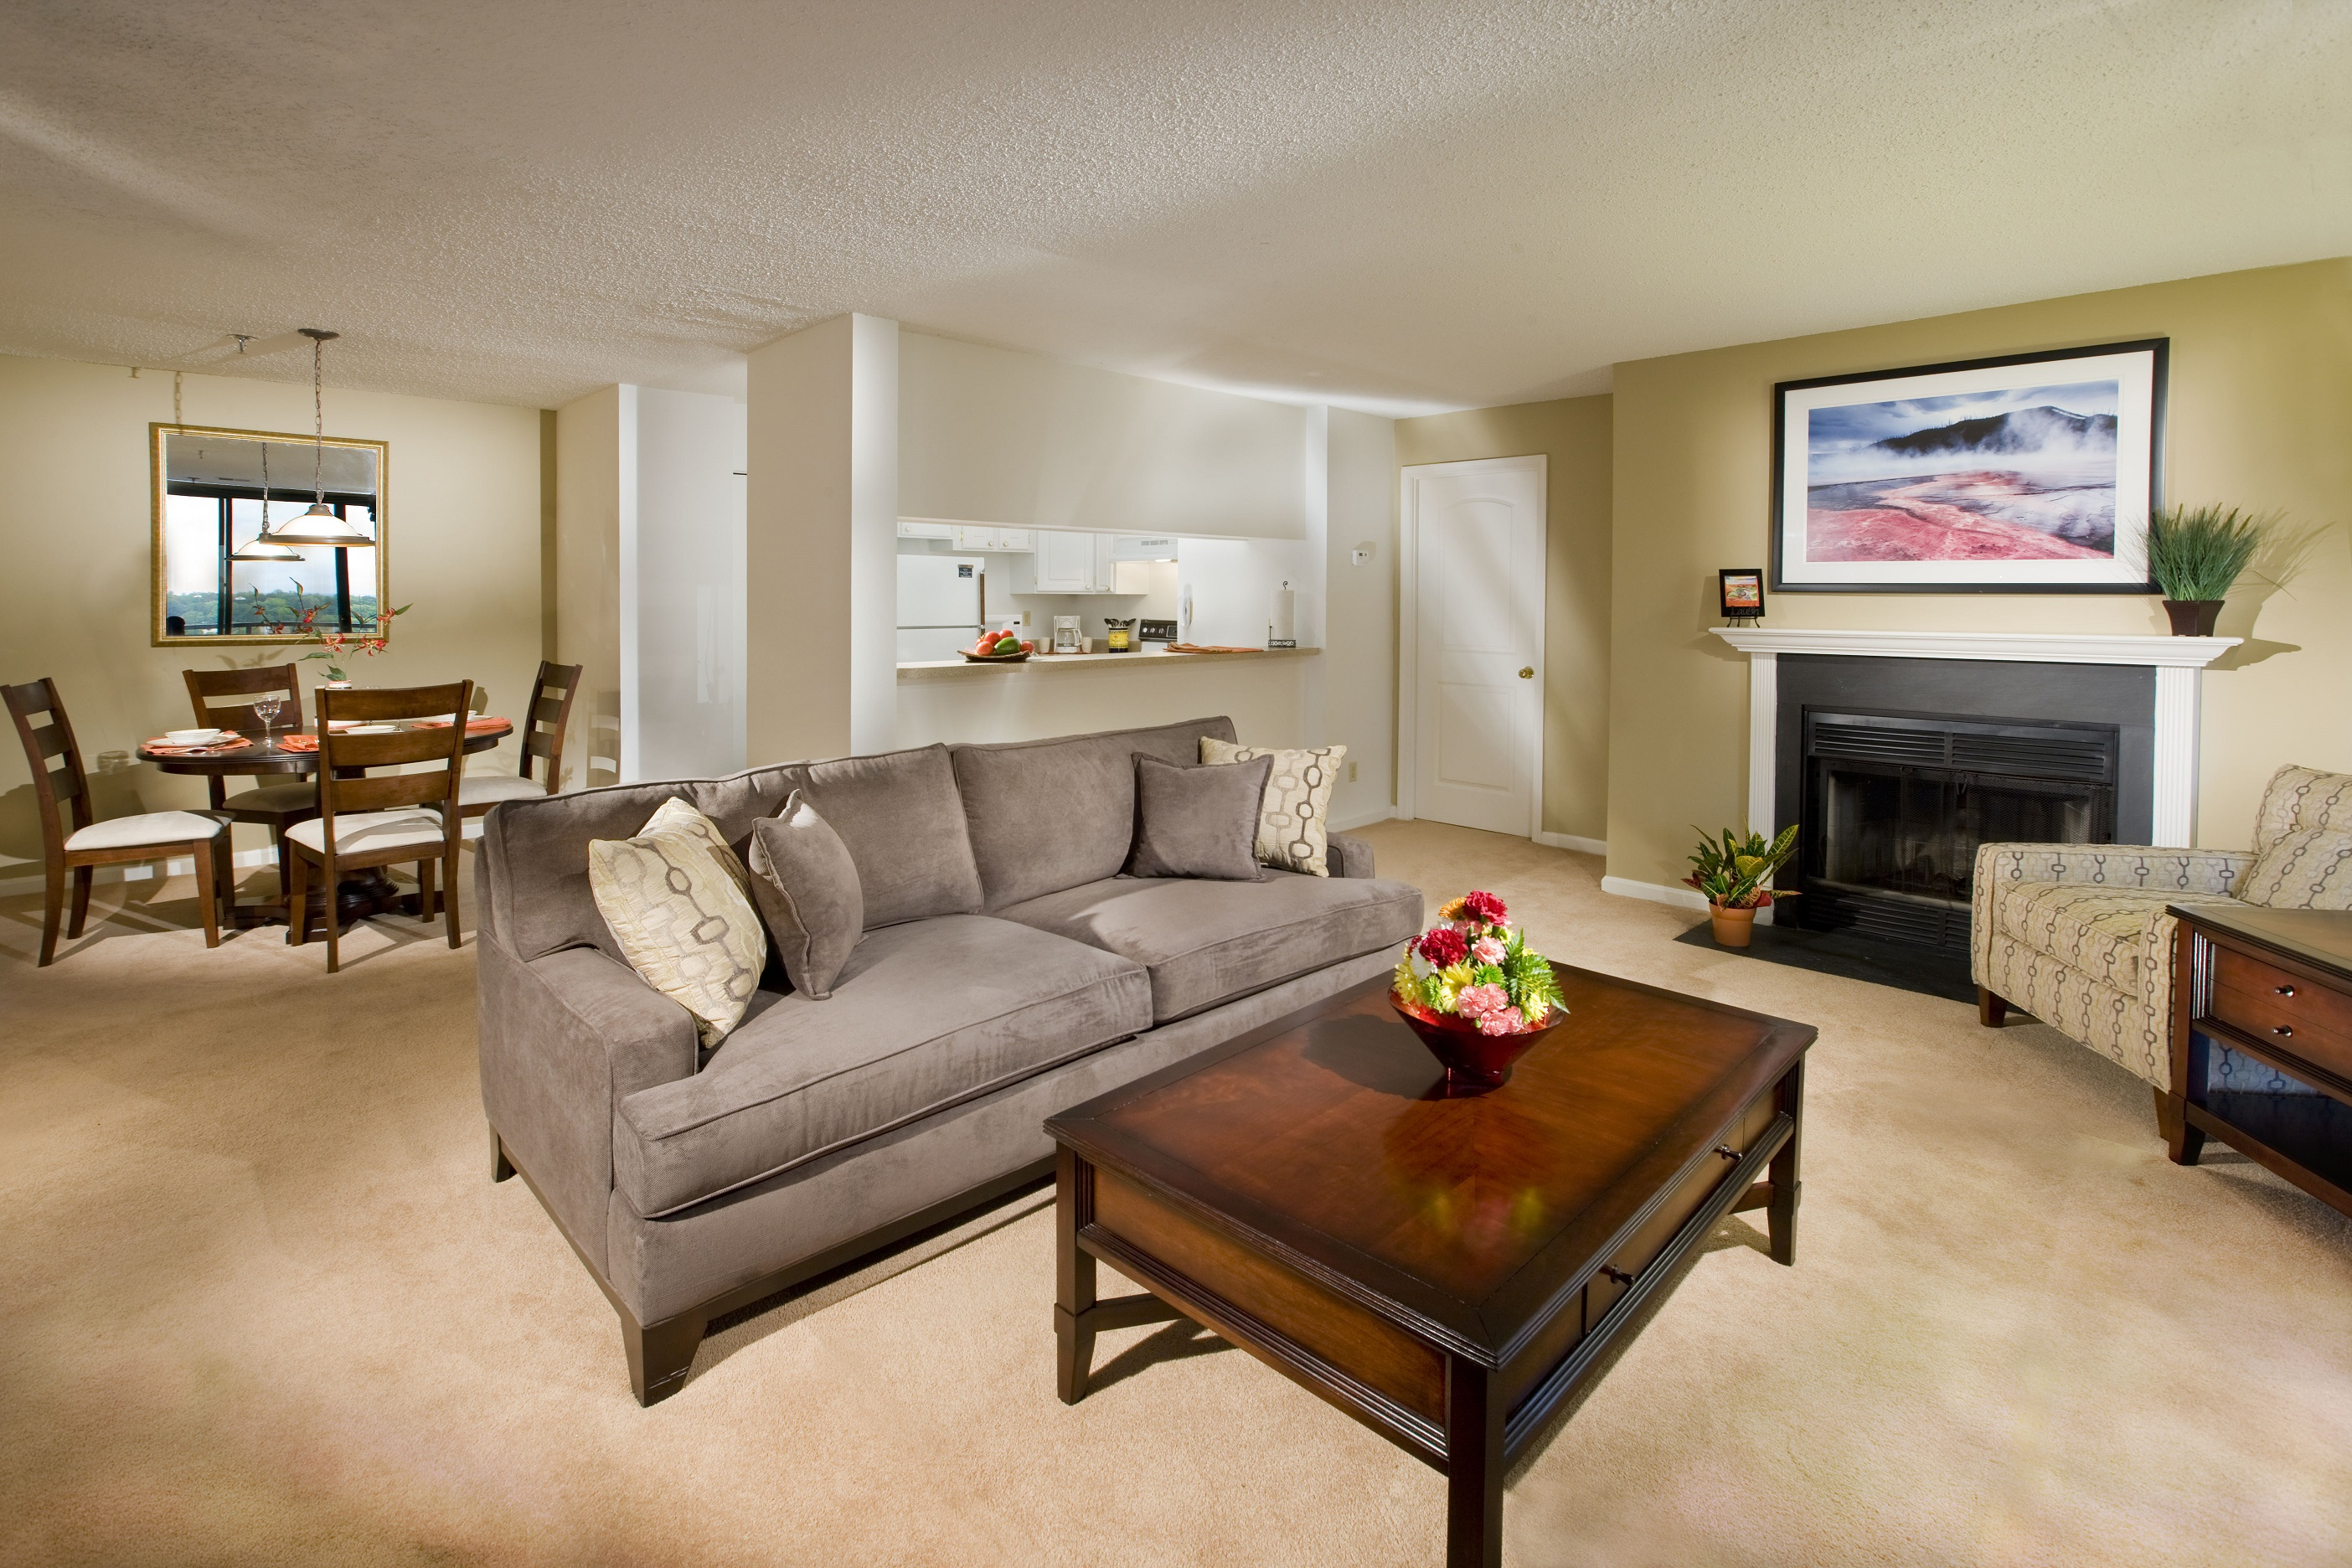 Residences at Rio apartments living room in Gaithersburg, Maryland